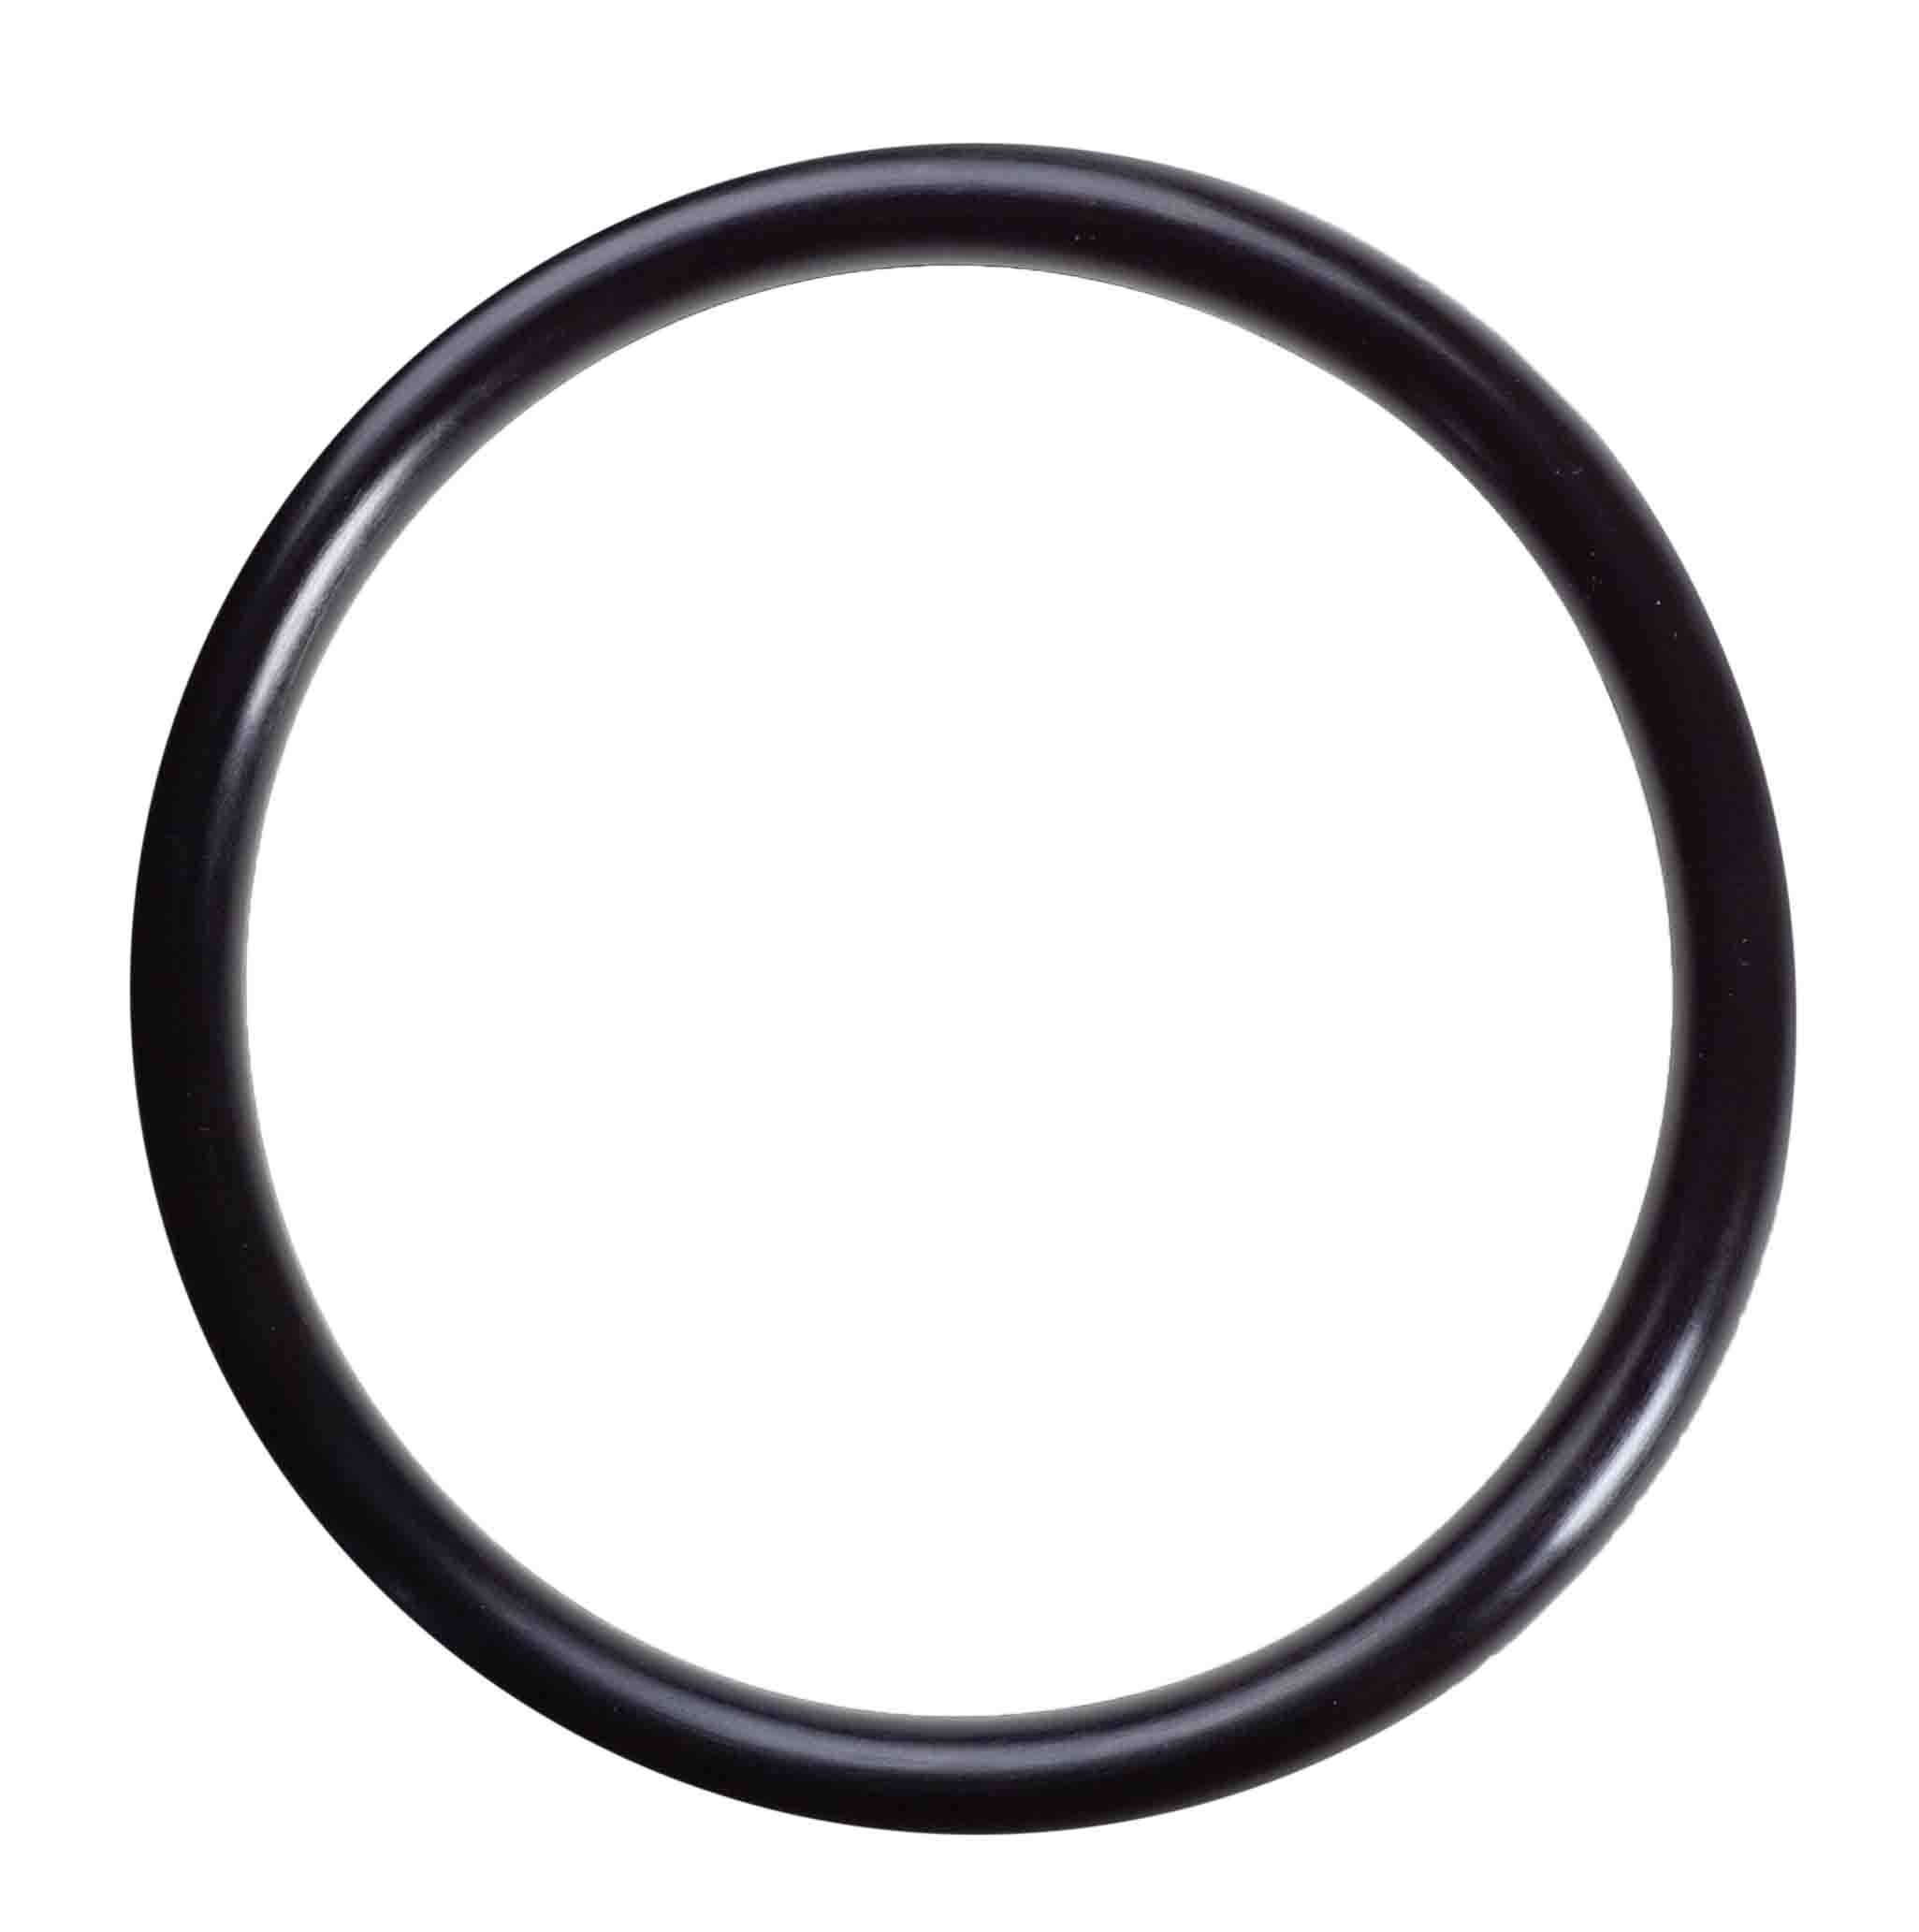 O-RING 4.190IDX.139 EPR 50